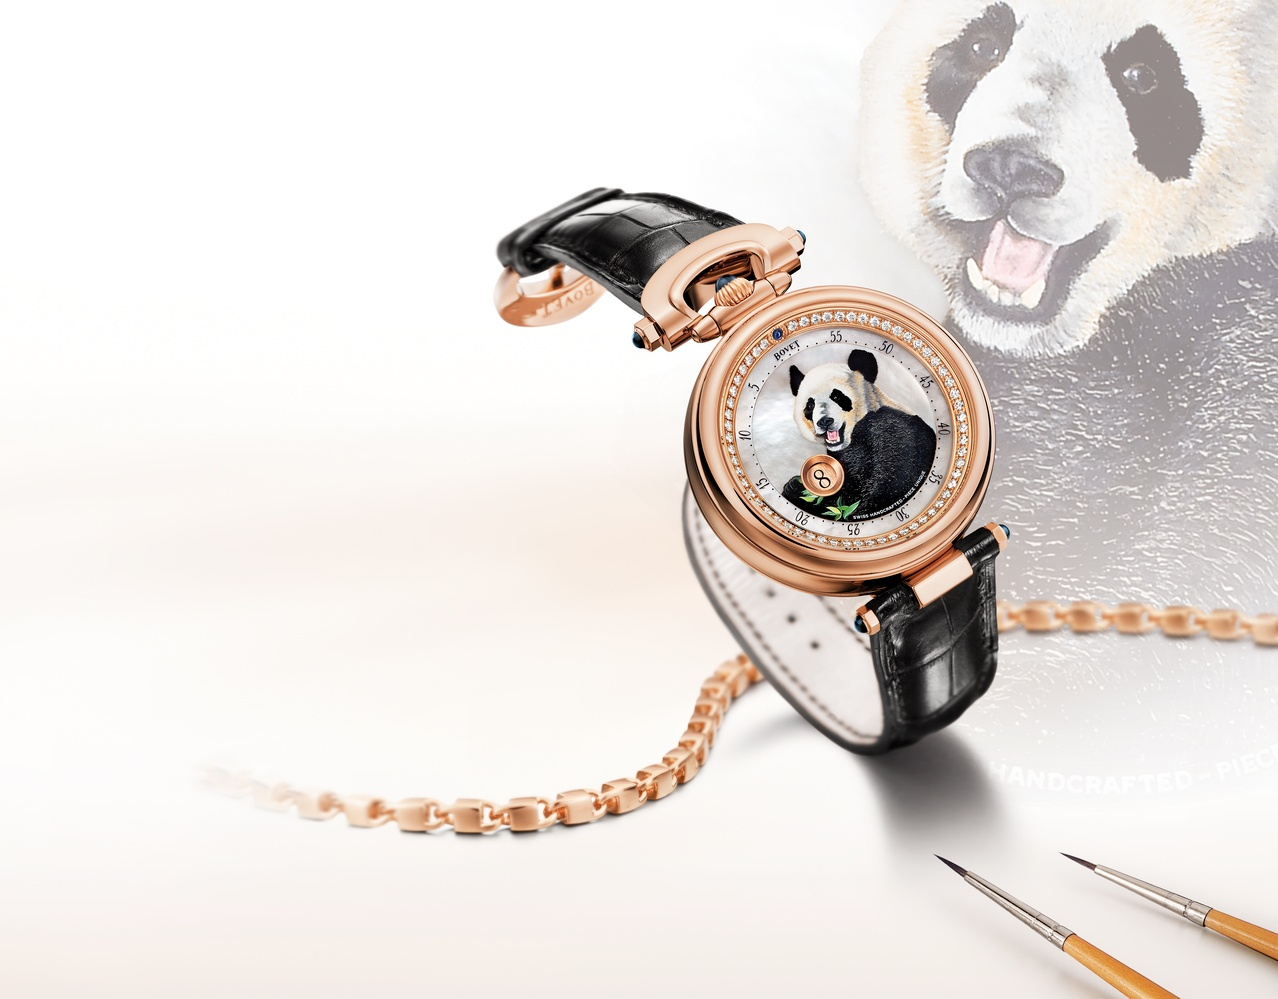 Bovet Watch   Amadeo Fleurier Complications   Ref. Nr. AFHS507    Call 312-944-3100  | For Availability